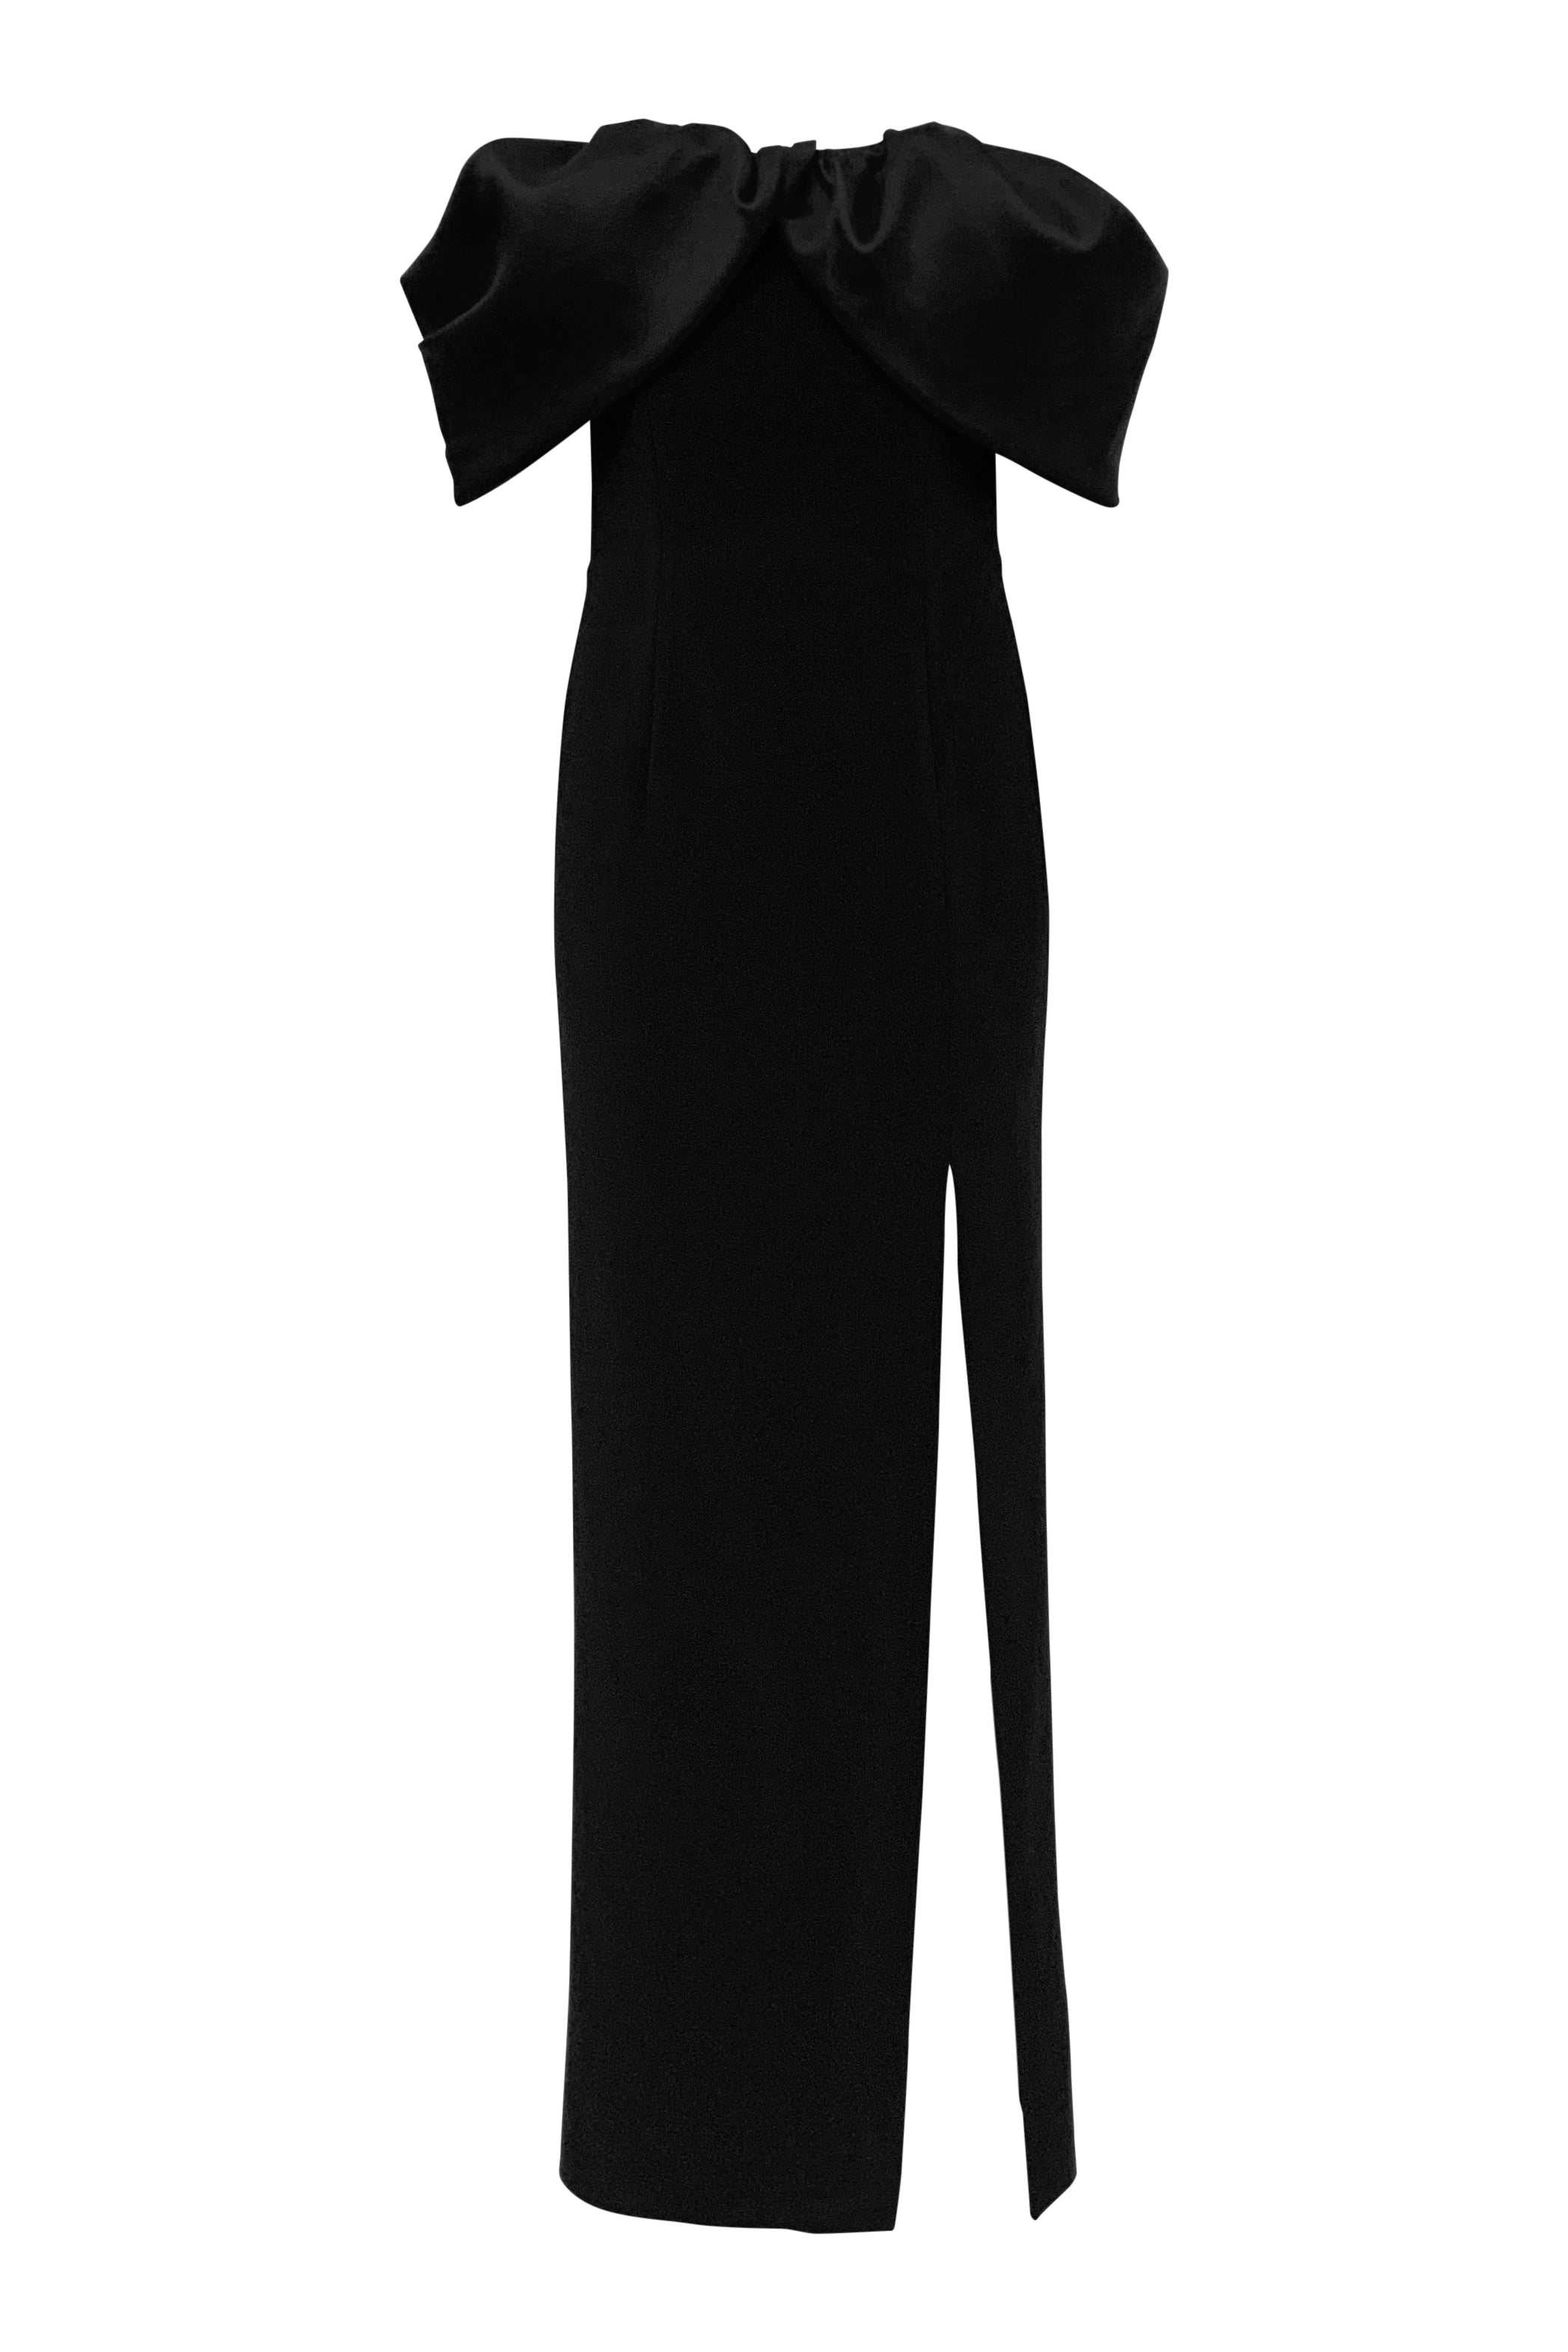 KN Off the Shoulder Gown with Detachable Train - Black